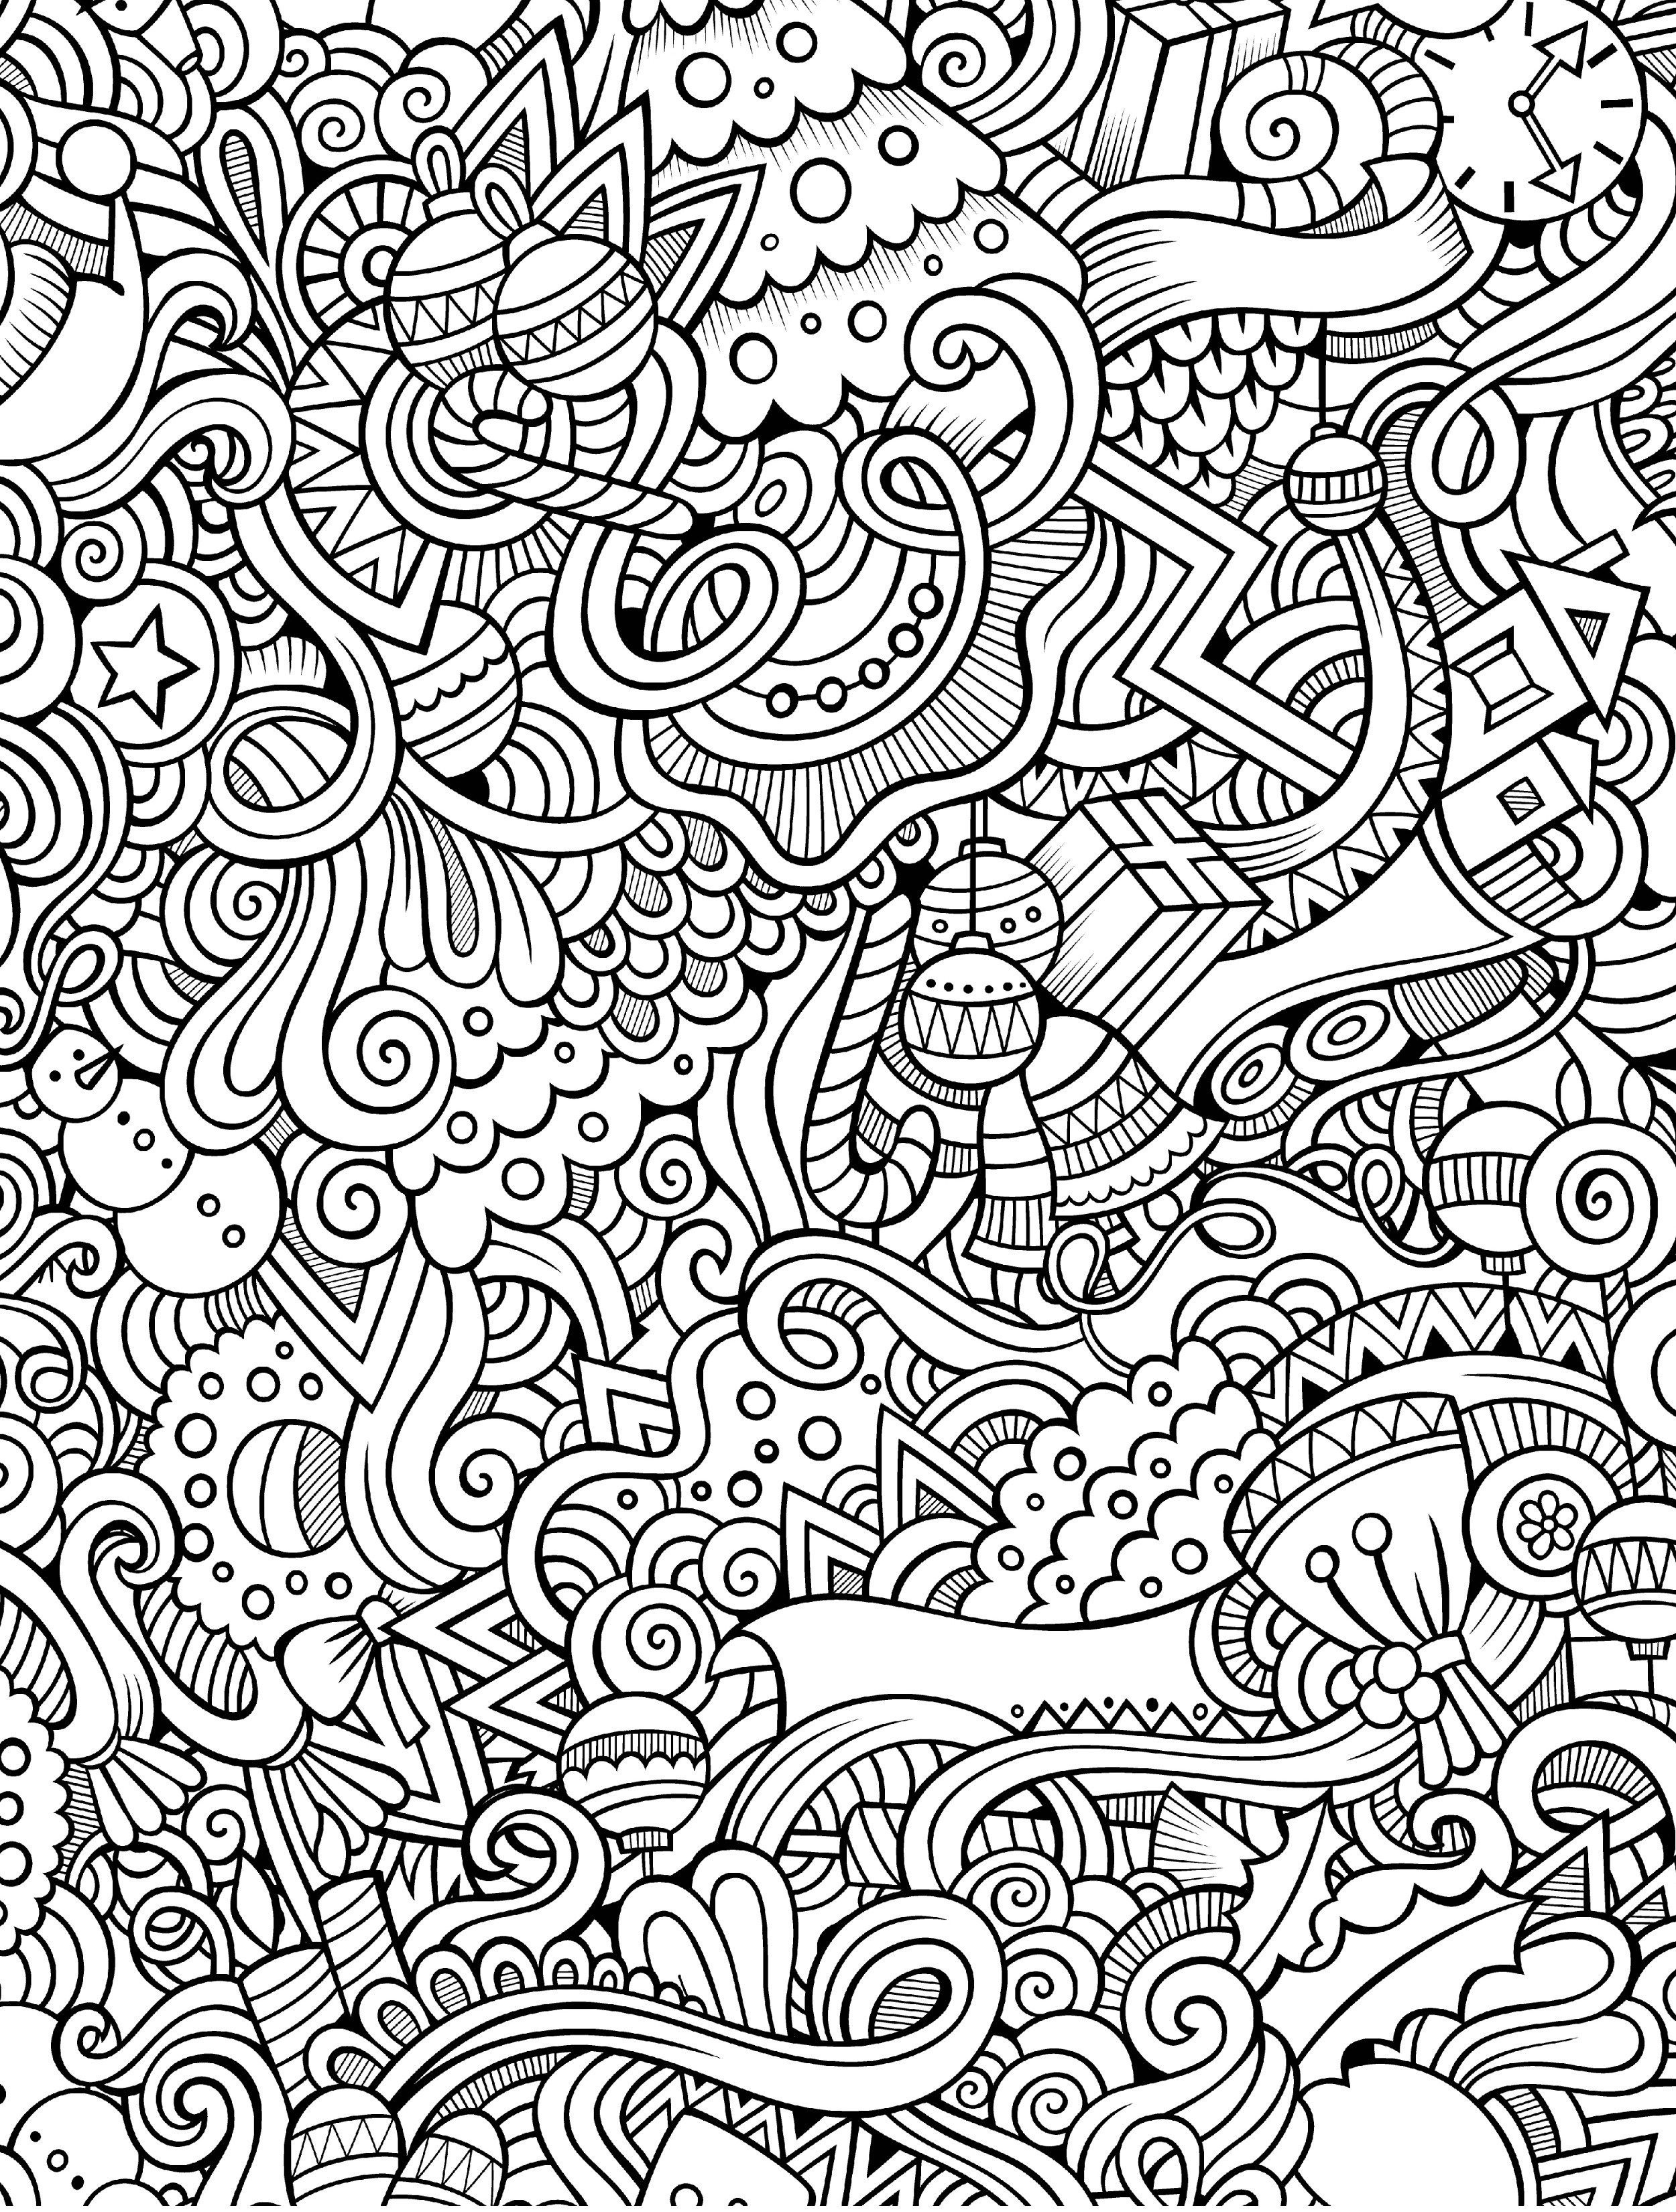 10 Free Printable Holiday Adult Coloring Pages | Coloring Pages - Free Printable Holiday Coloring Pages